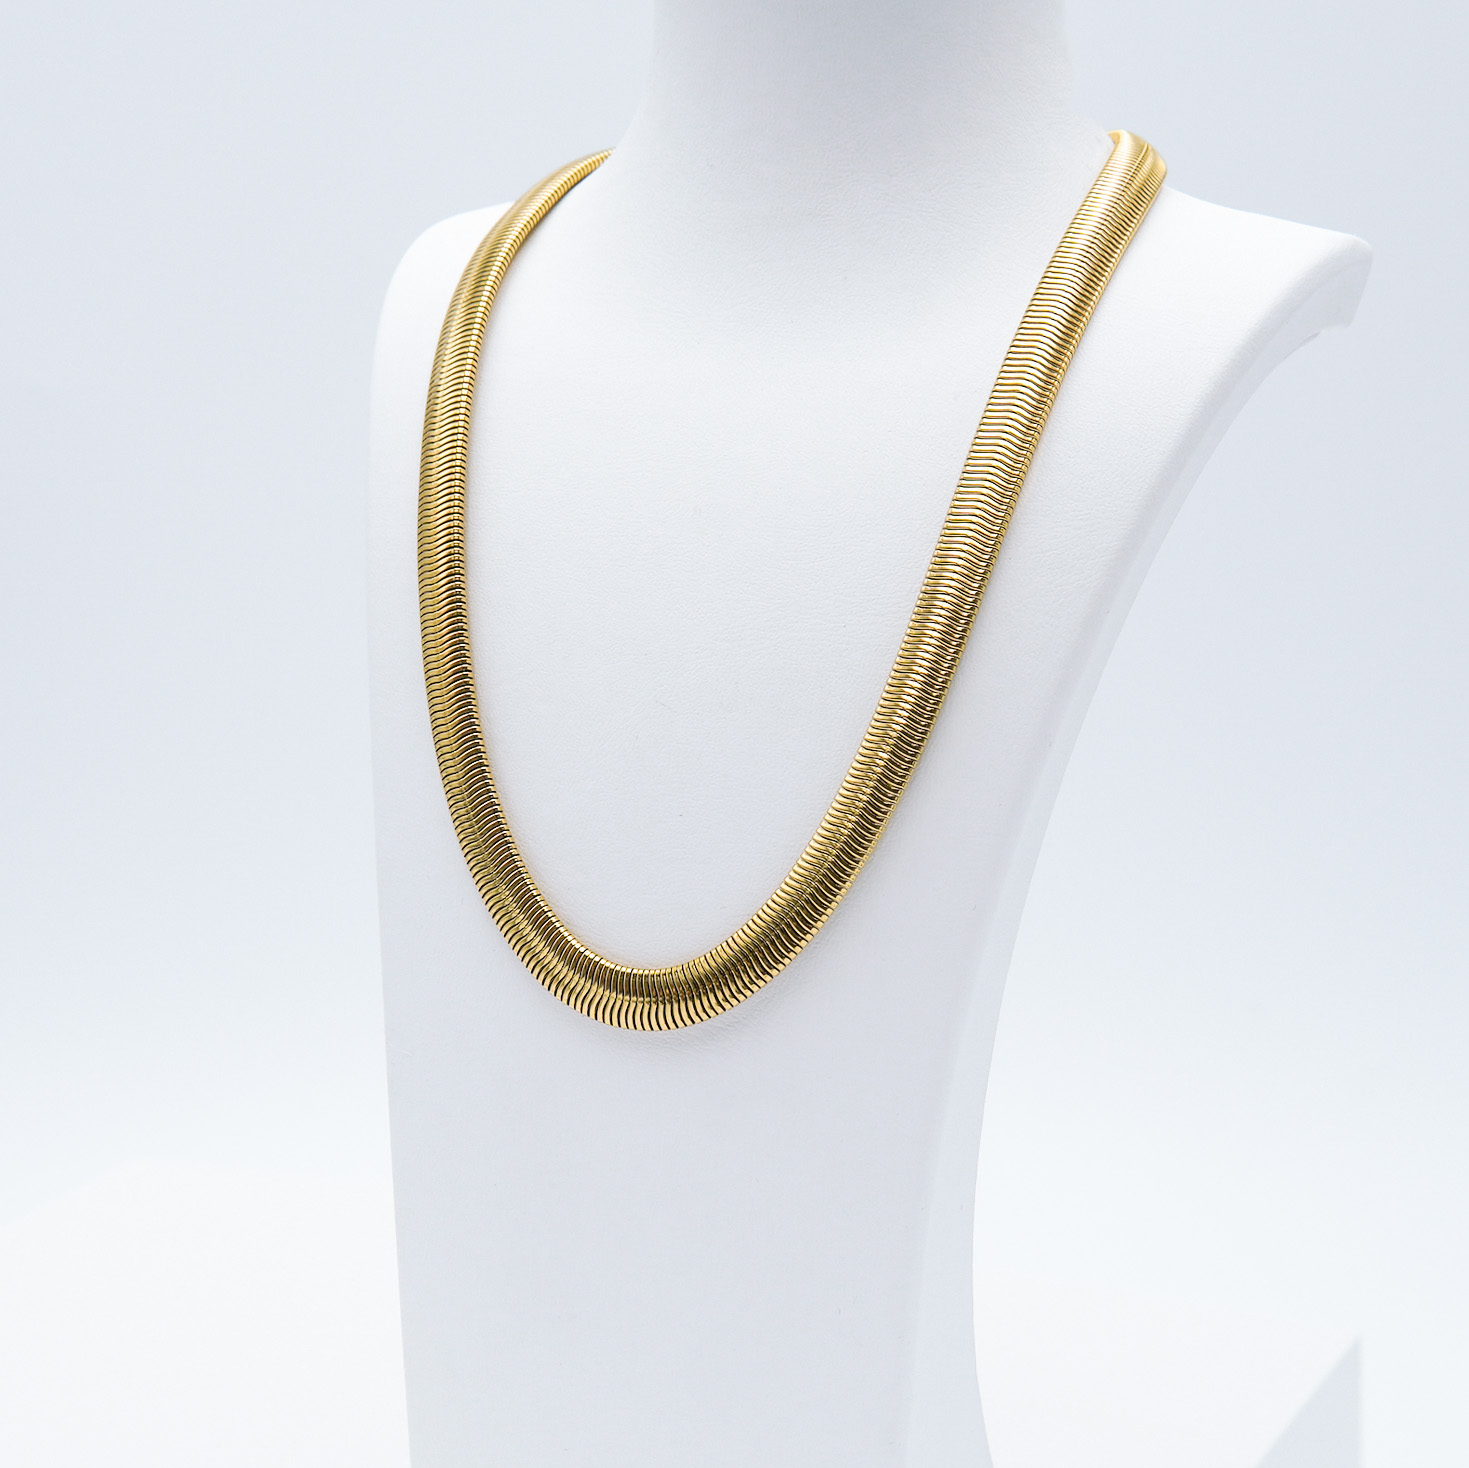 2- Marilyn Monroe Necklace Gold Edition Halsband Modern and trendy Necklace and women jewelry and accessories from SWEVALI fashion Sweden